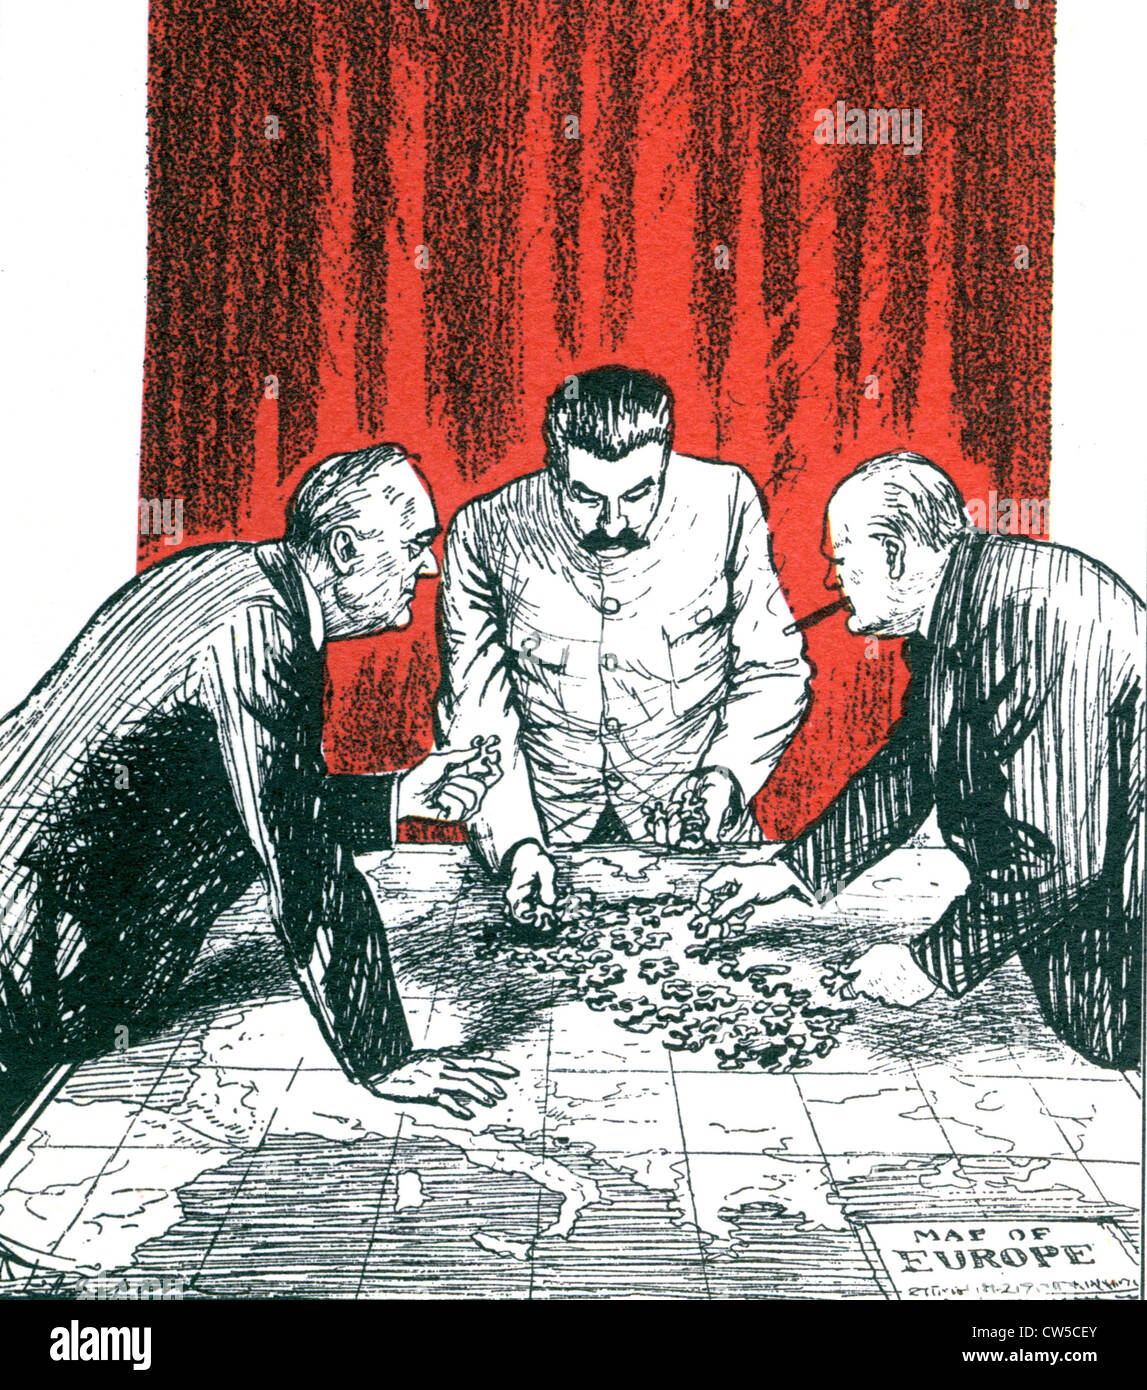 Shepard, caricature: 'The European hotch-potch' (Stalin, Roosevelt and Churchill, concerning the Yalta - Stock Image